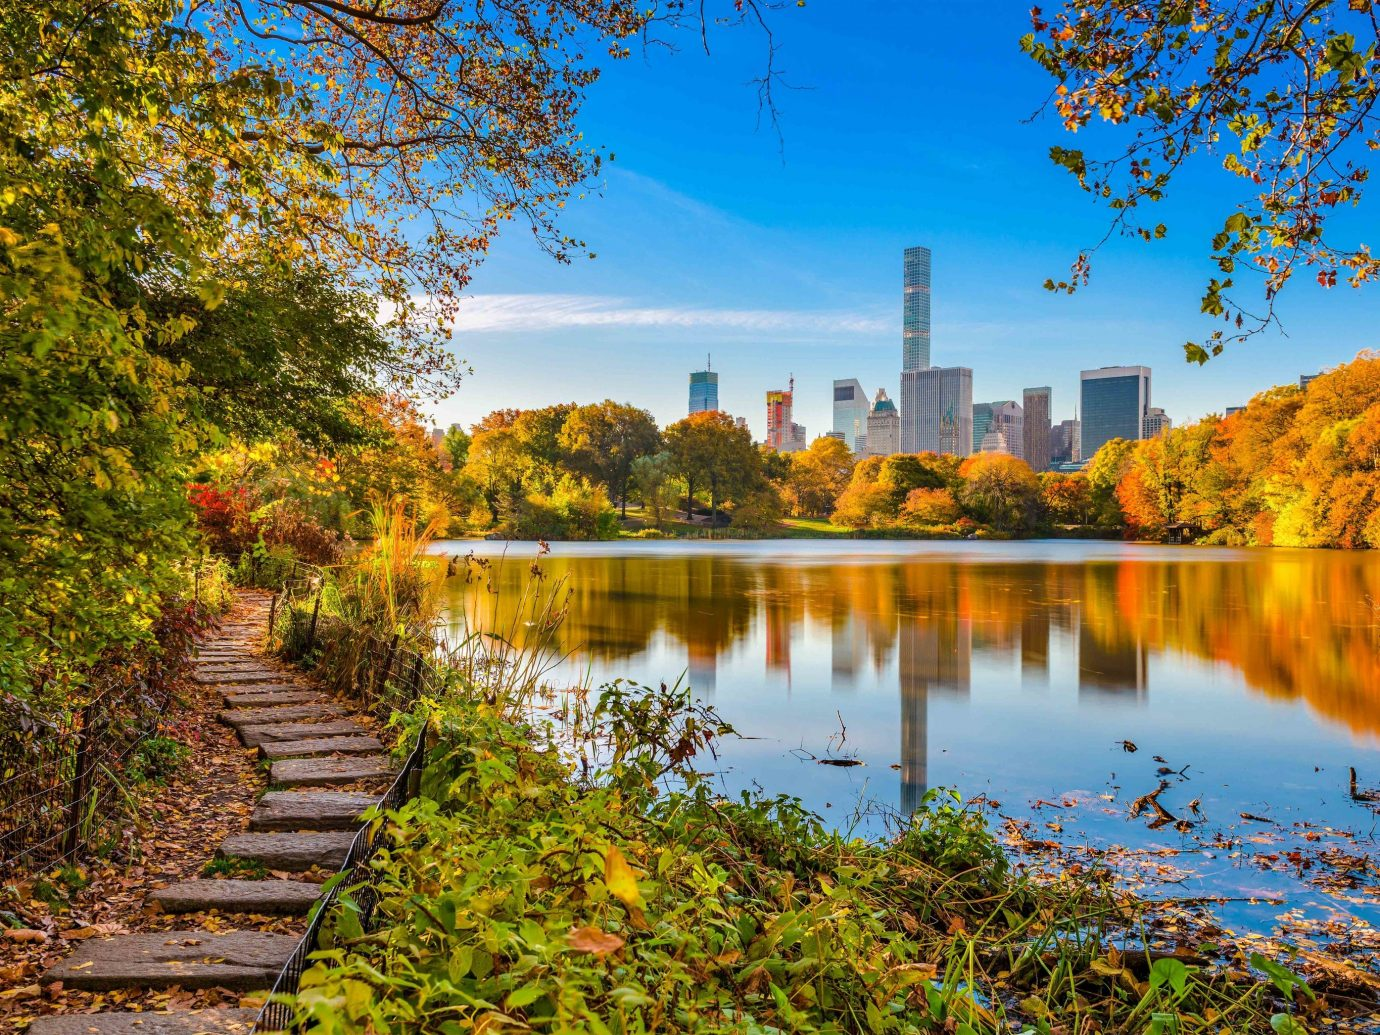 Arts + Culture Brooklyn Canada Hawaii Los Angeles Morocco New York Oahu Offbeat Scotland Toronto reflection leaf Nature water autumn waterway sky tree Lake bank pond reservoir River morning daytime plant landscape City evening sunlight real estate wetland watercourse spring branch computer wallpaper skyline state park lacustrine plain Canal bayou